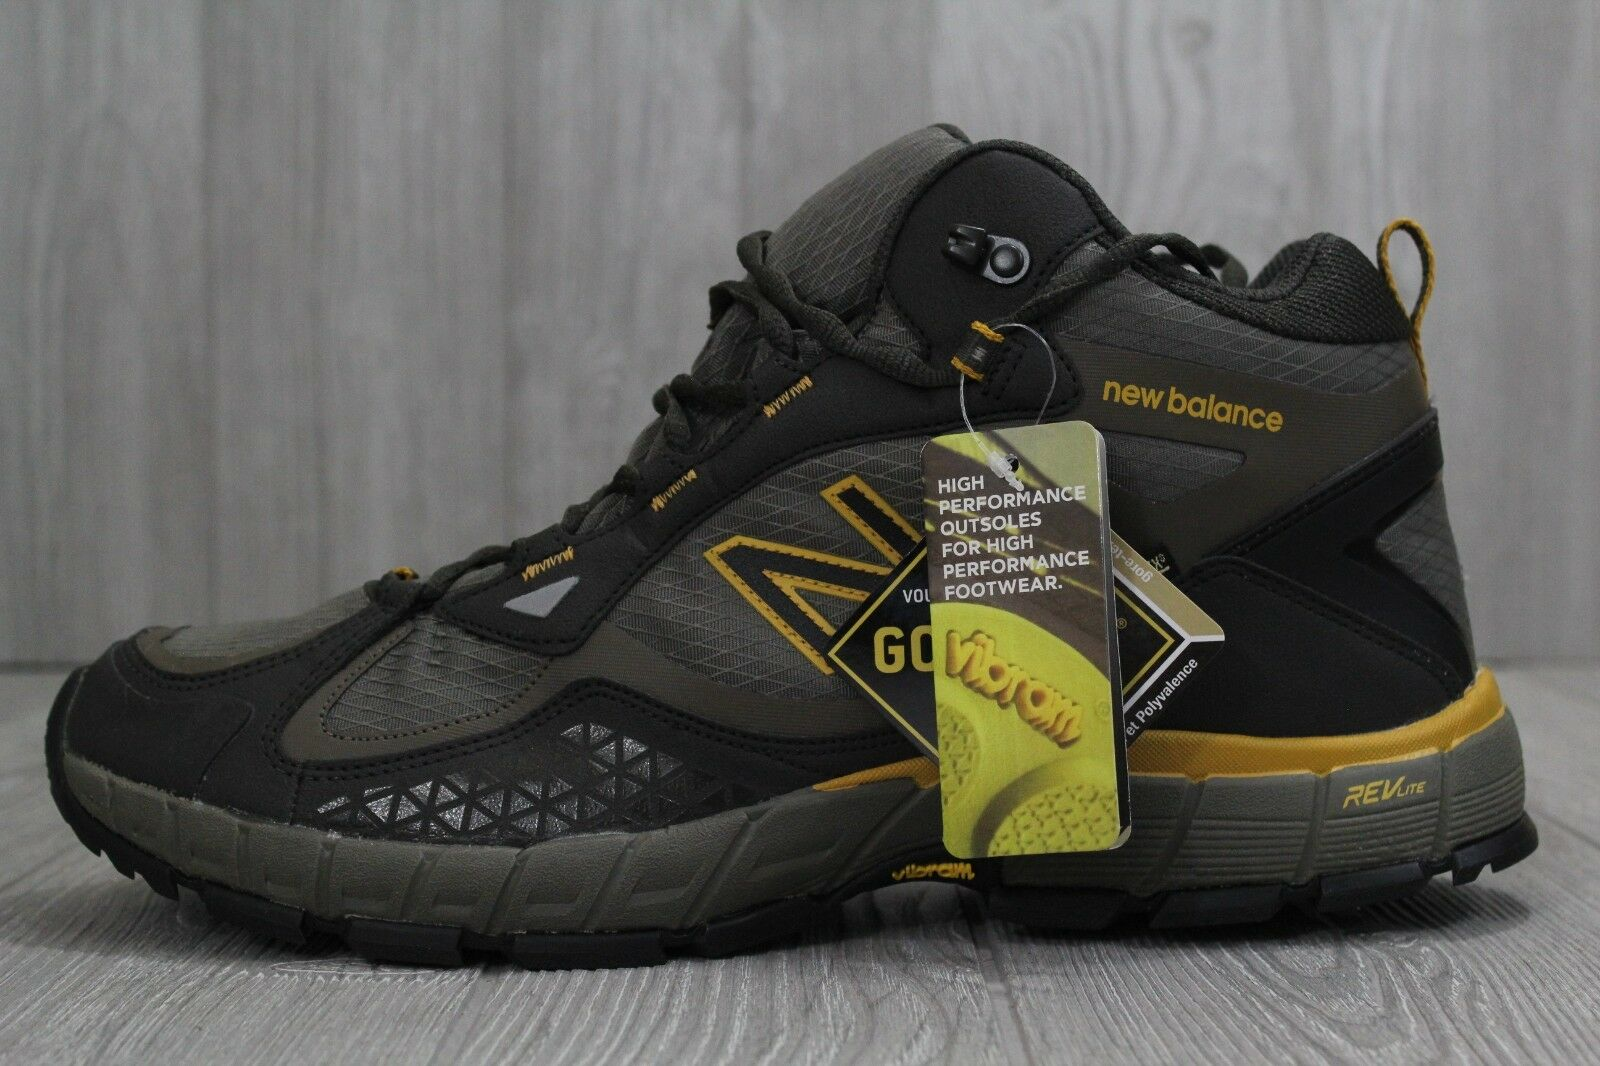 30 New Balance 703 Gore-Tex Mens Hiking Boots Vibram 9.5-13 (11.5 4E) MO703HGT